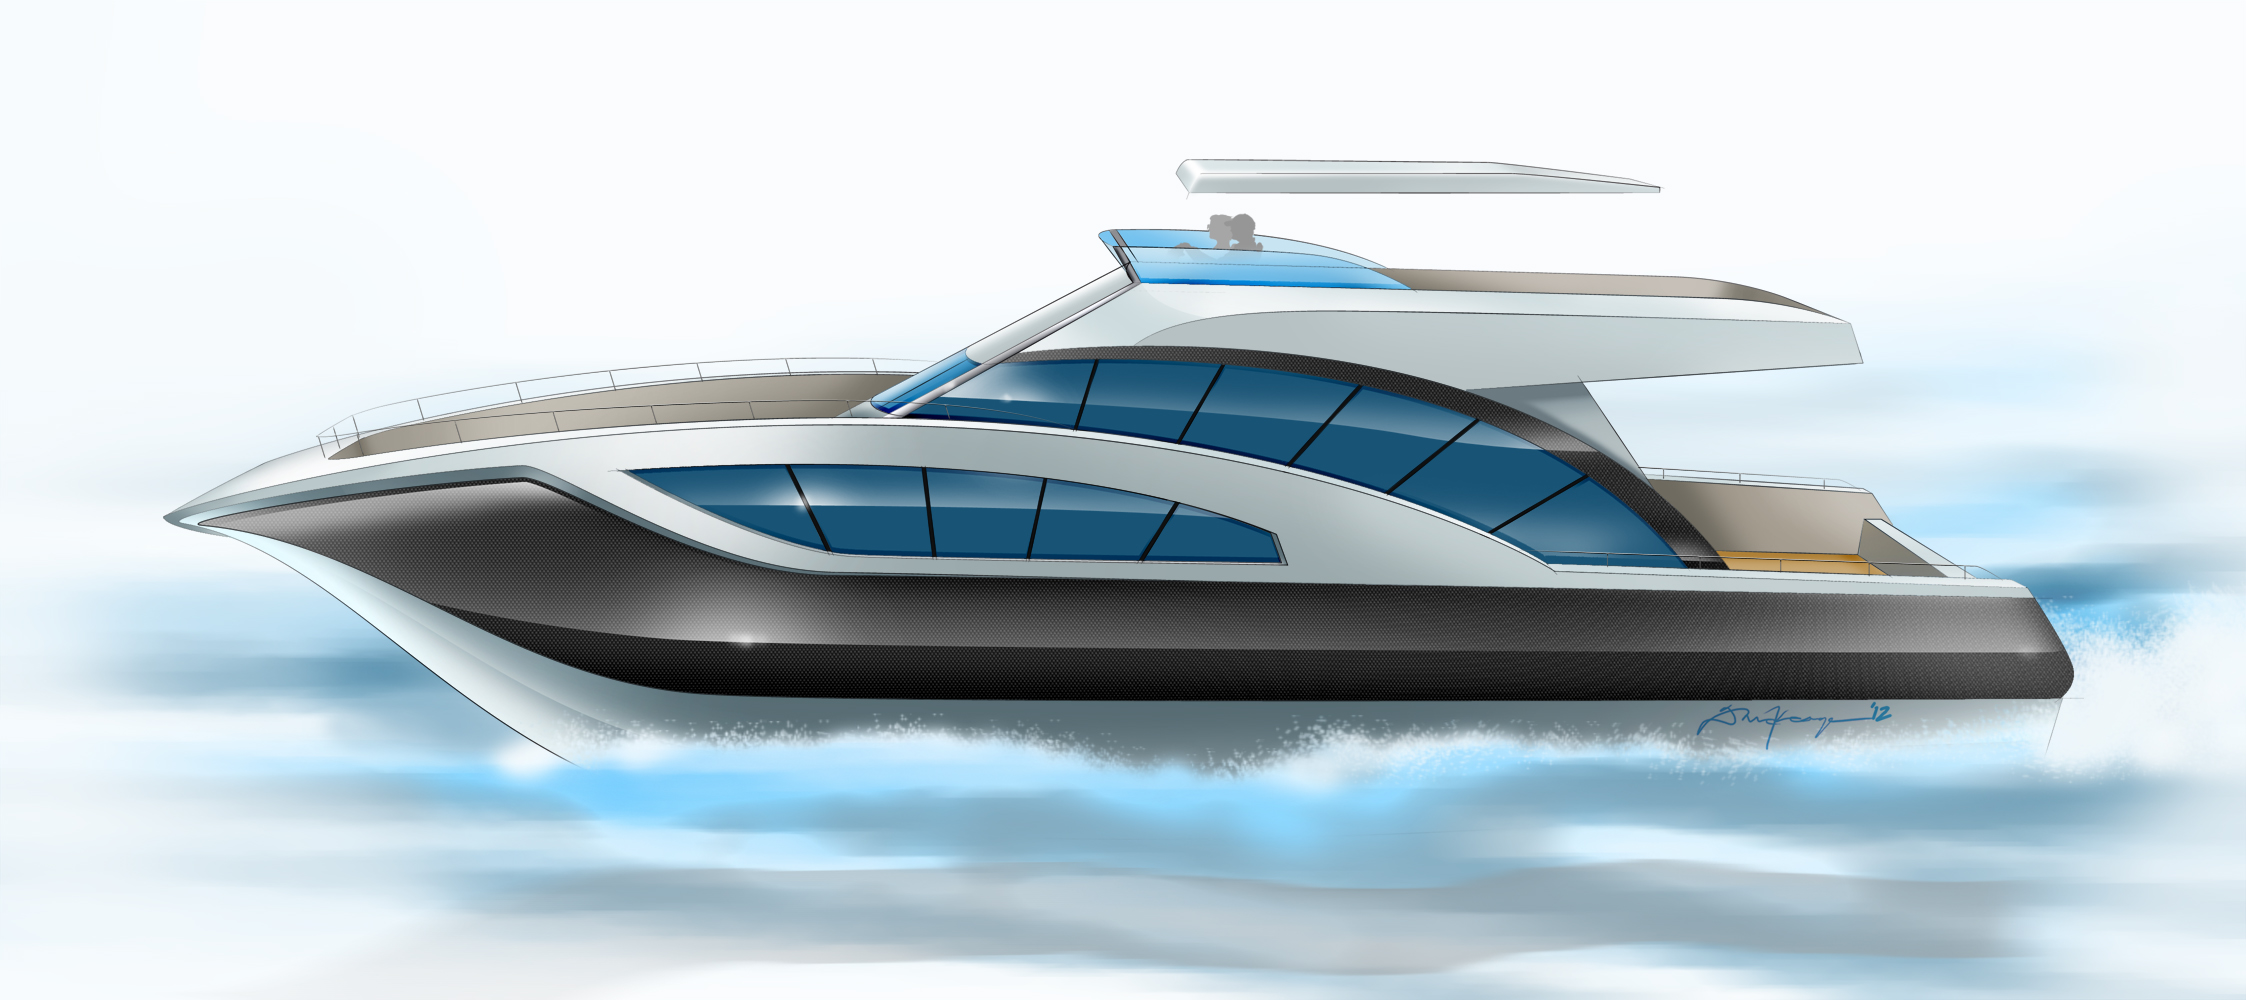 Marine Keage Concepts Calgary Alberta Automotive Design